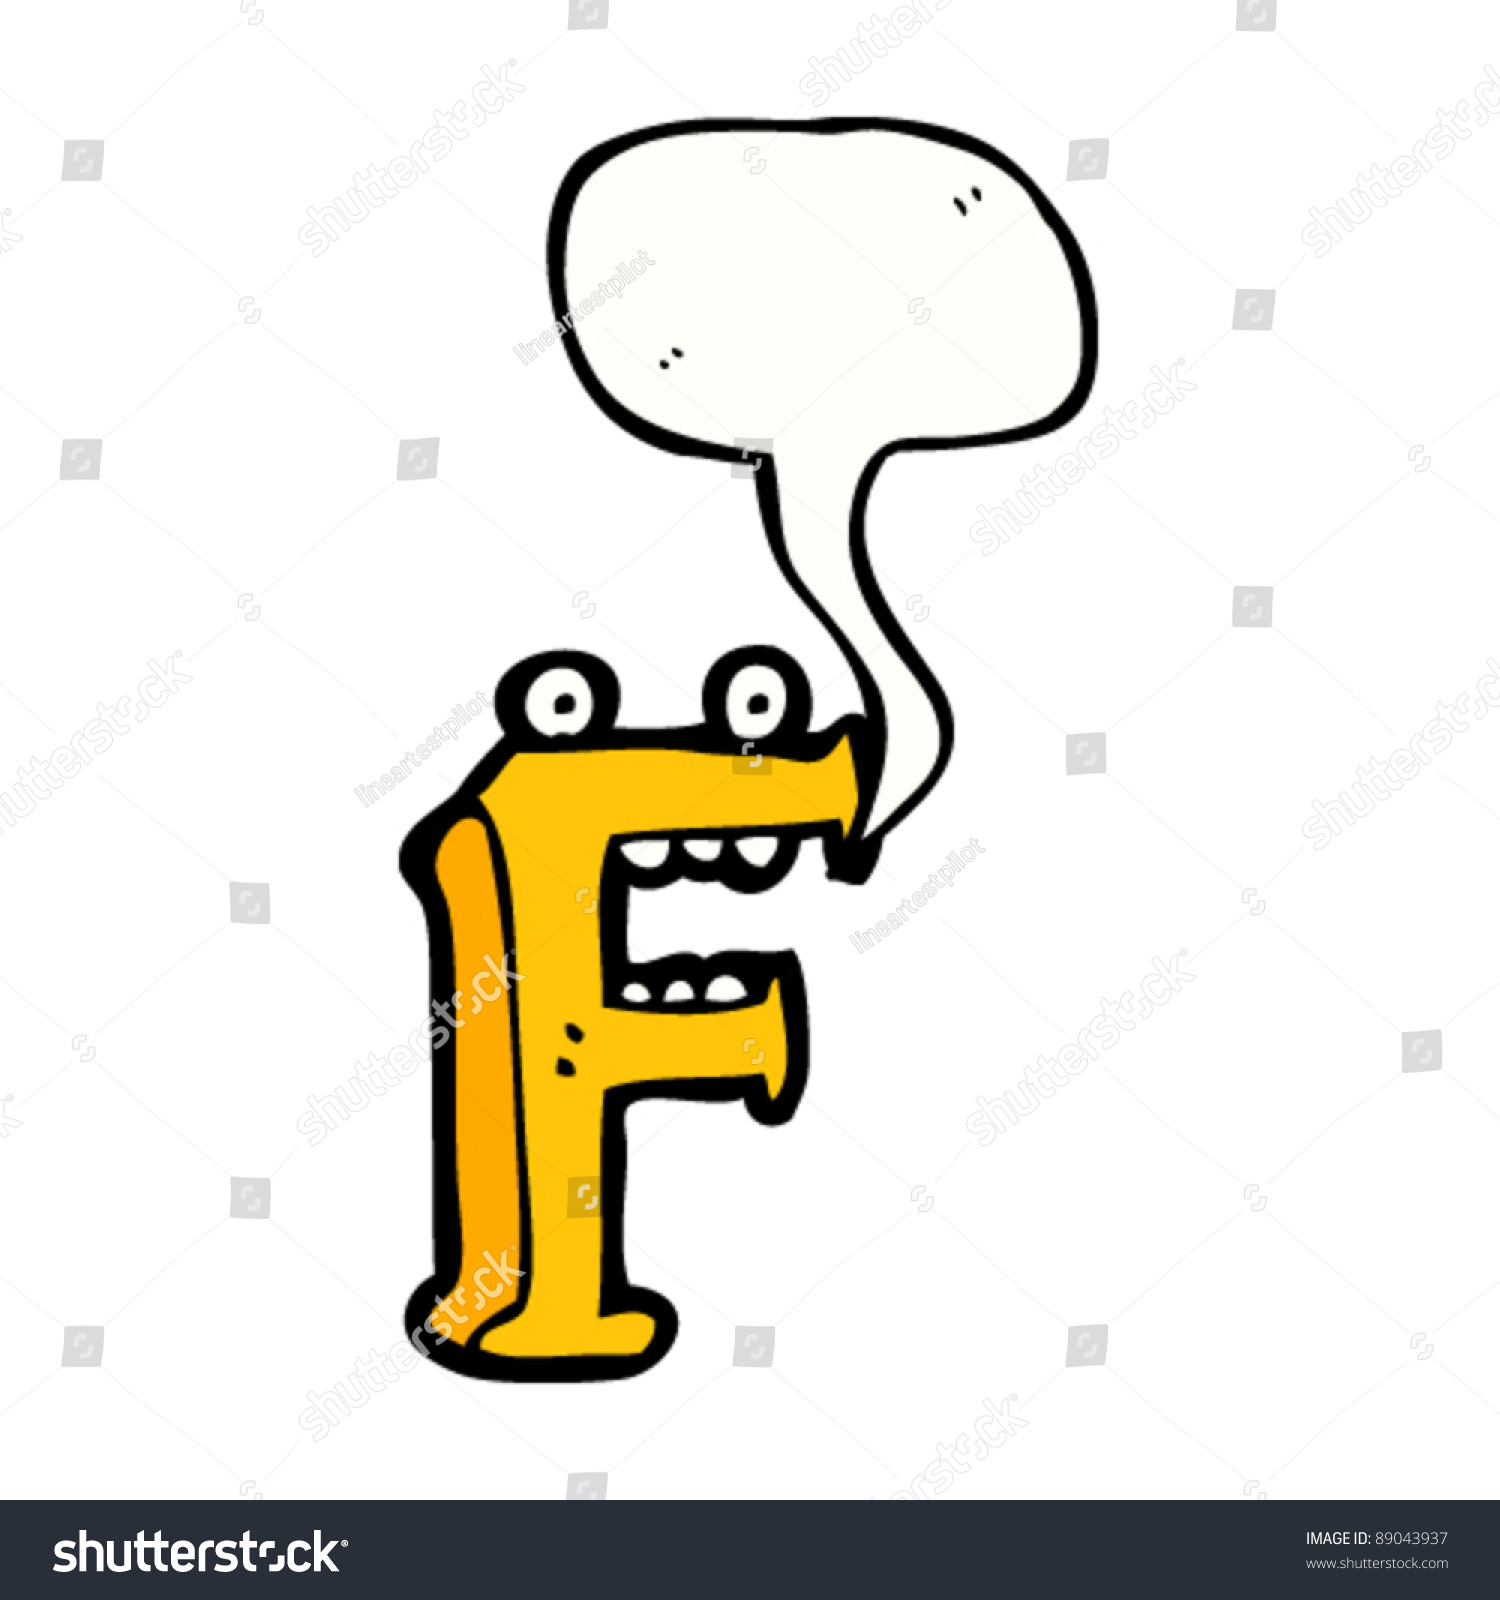 Cartoon Characters Letter Z : Cartoon character letter f stock vector illustration